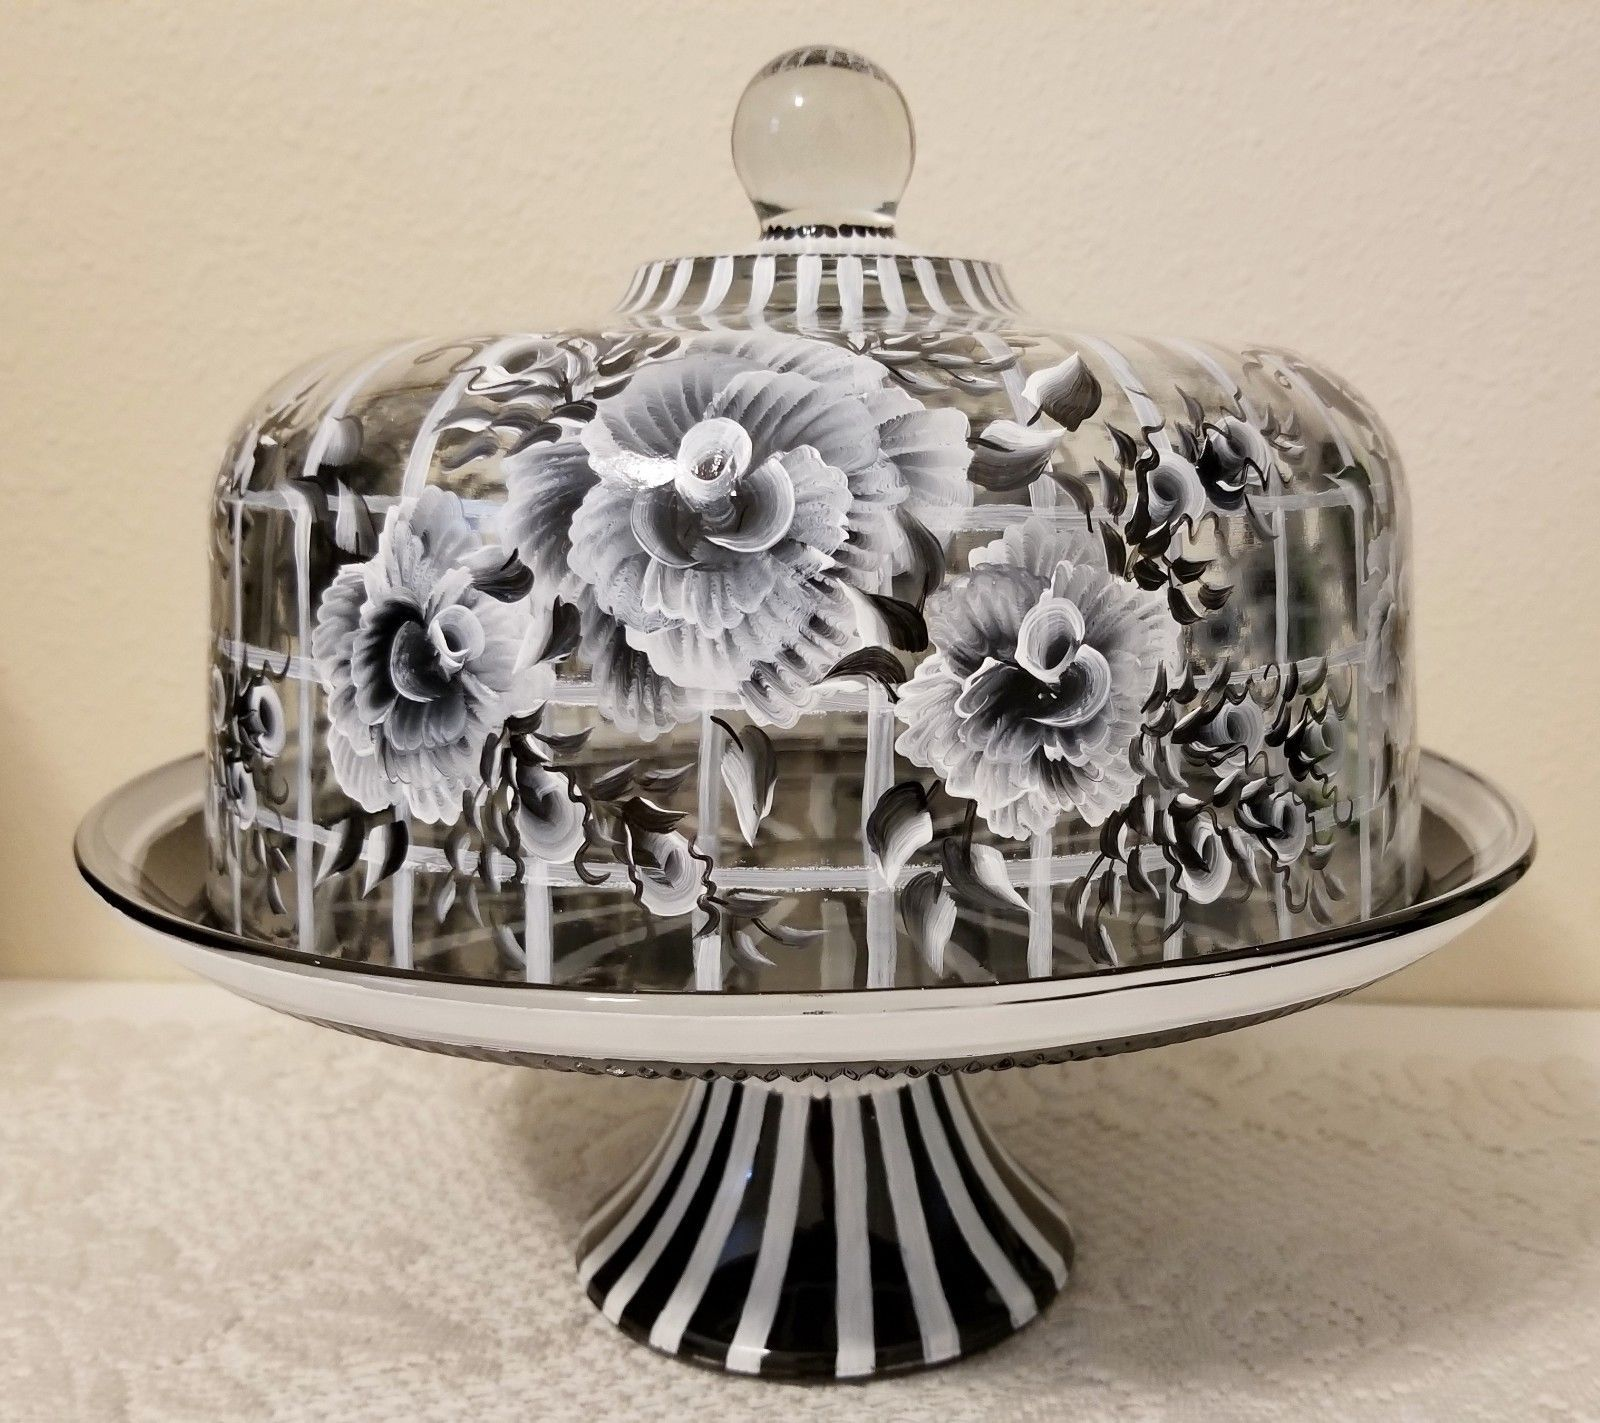 Black and white flower glass cake stand dome cake